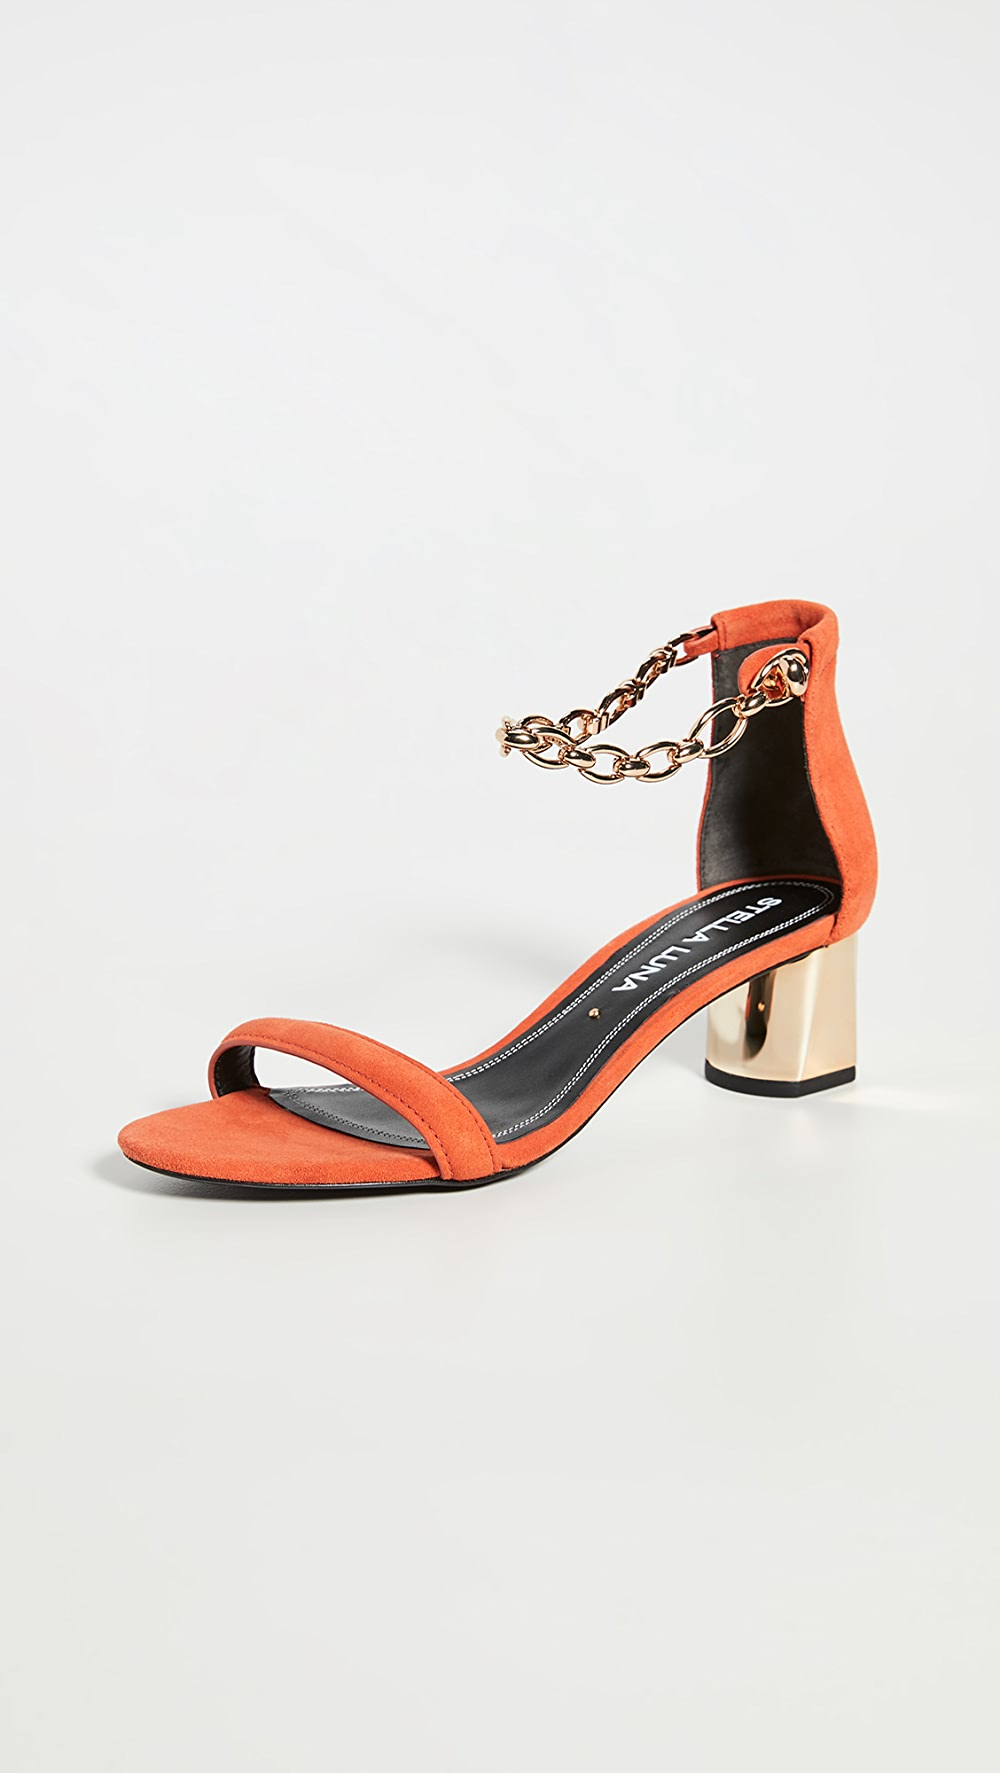 Adaptable Stella Luna - Ankle Chain Sandals Be Shrewd In Money Matters